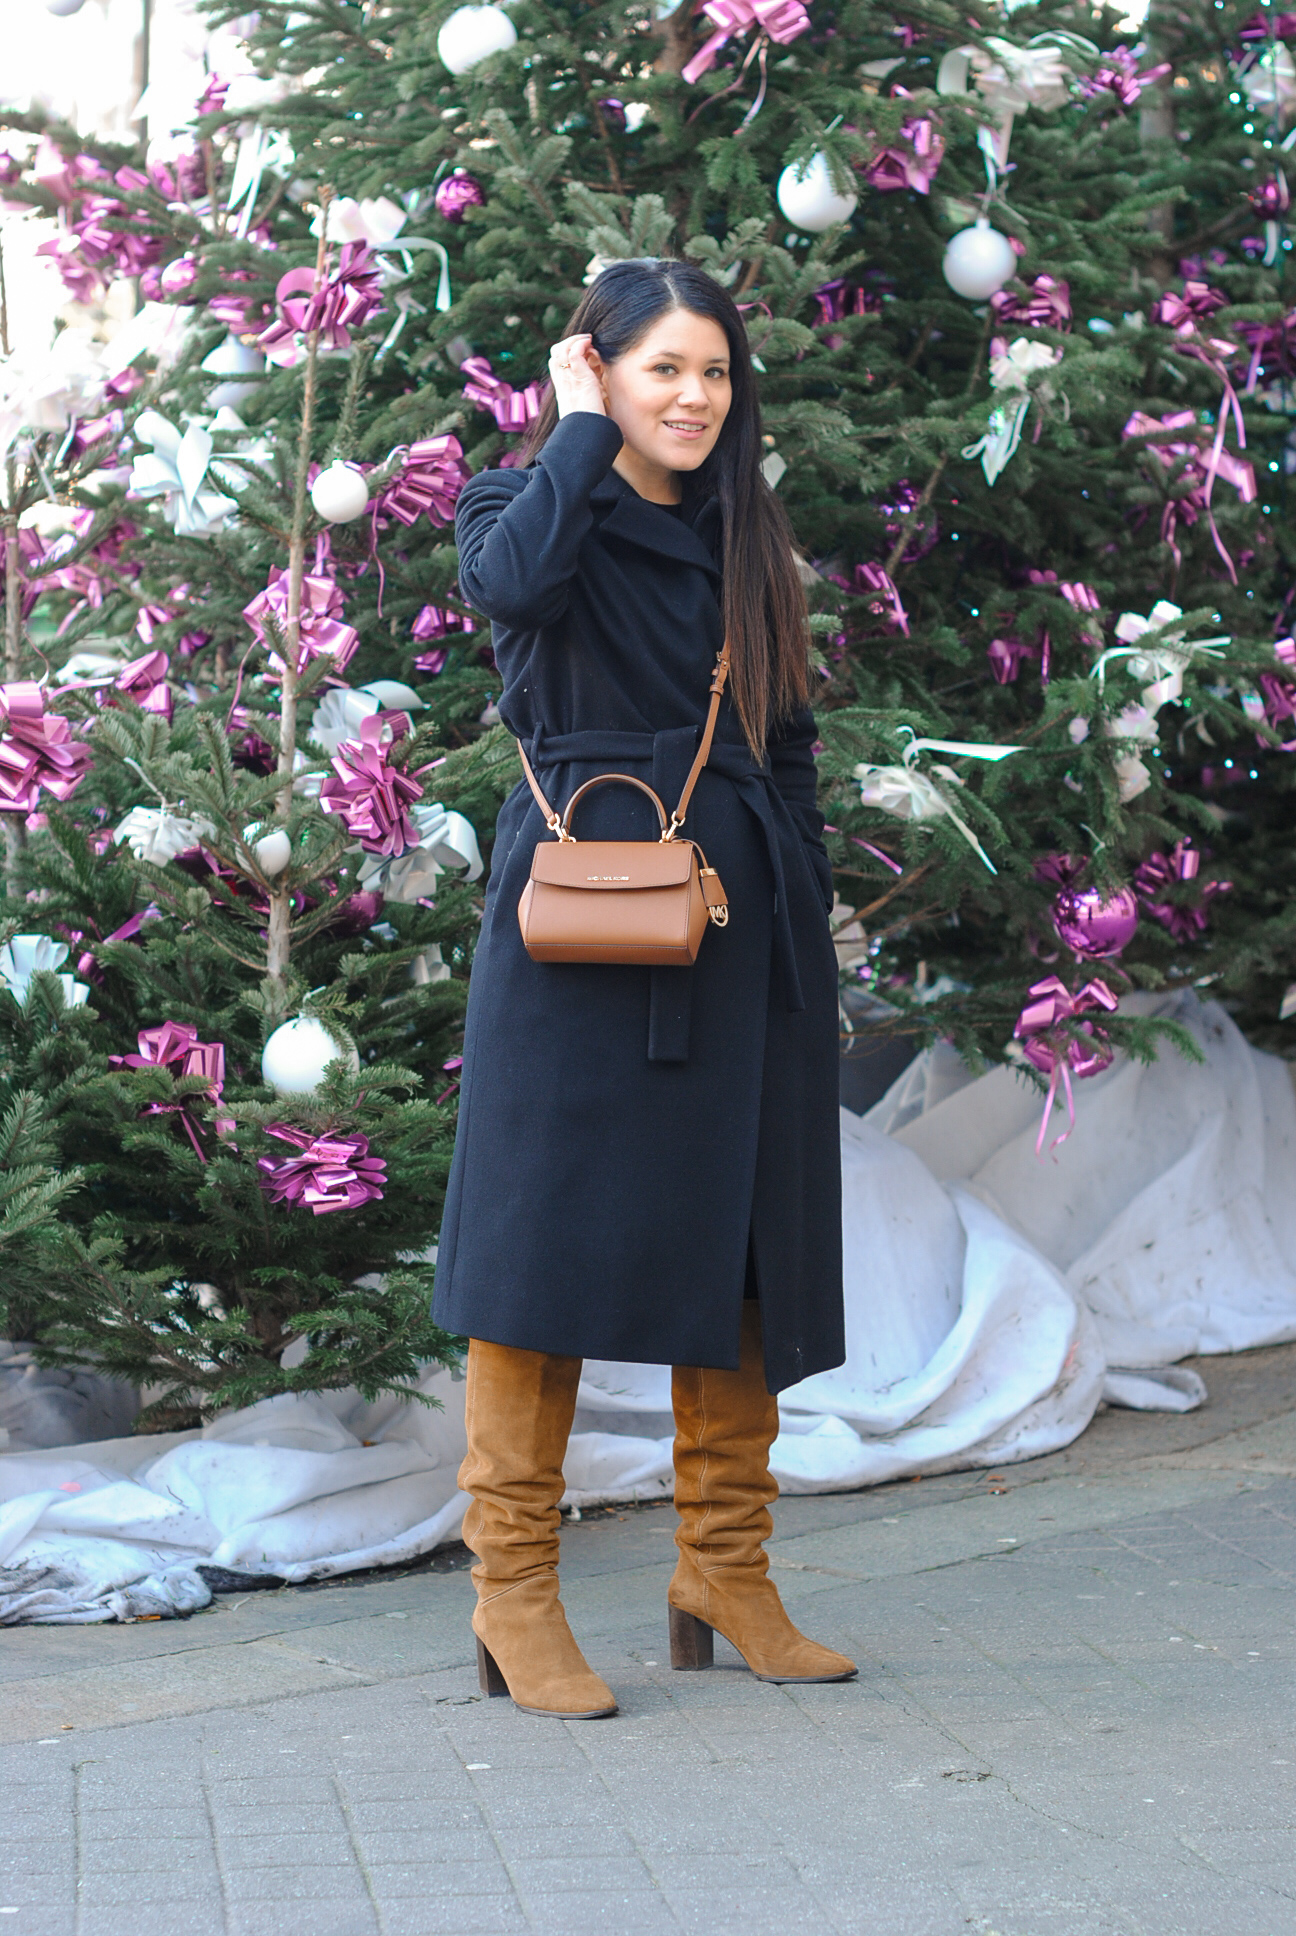 20210110-OUTFIT-BOLSO-MICHAEL KORS-02